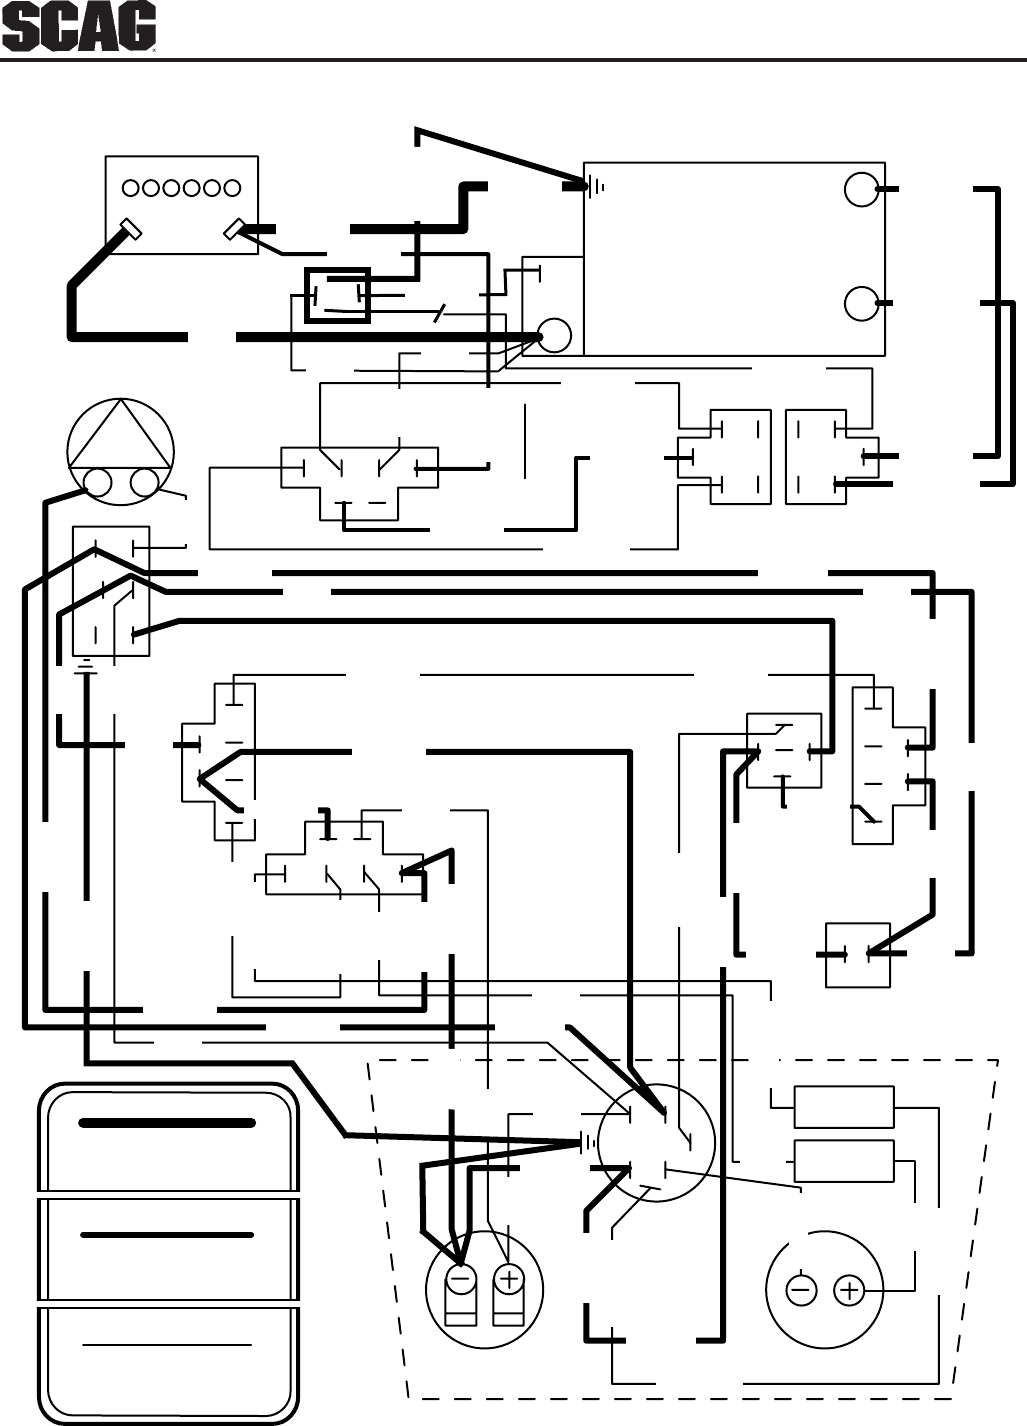 b9ce615b 020e 4d78 97db 0a4906c05276 bg22 scag wiring diagram on scag images free download wiring diagrams  at cos-gaming.co